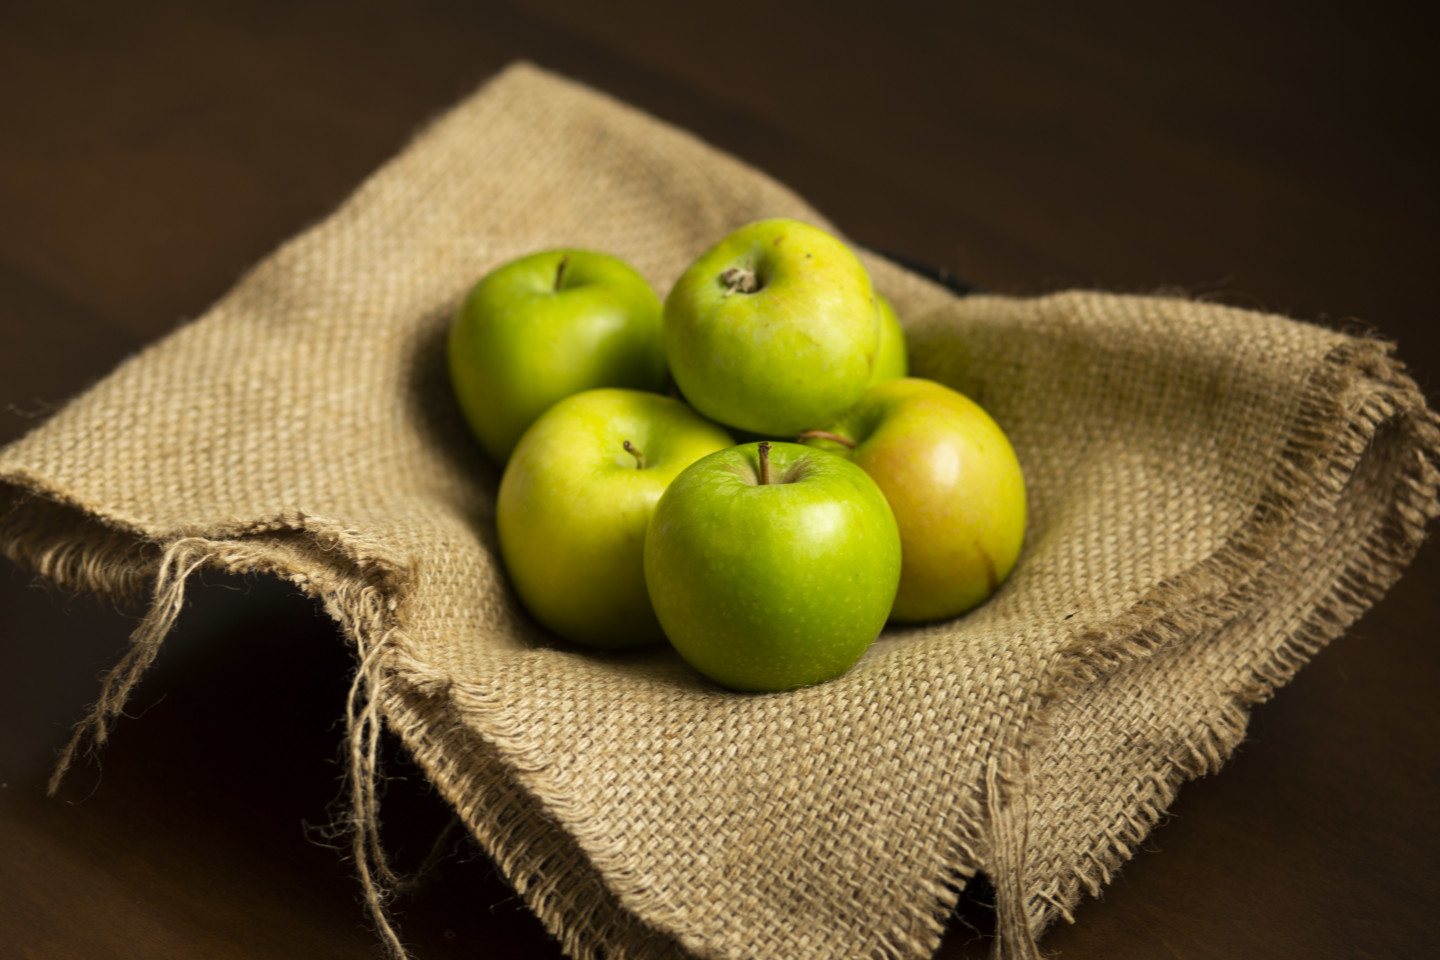 Six apples sitting in a bowl covered with burlap.